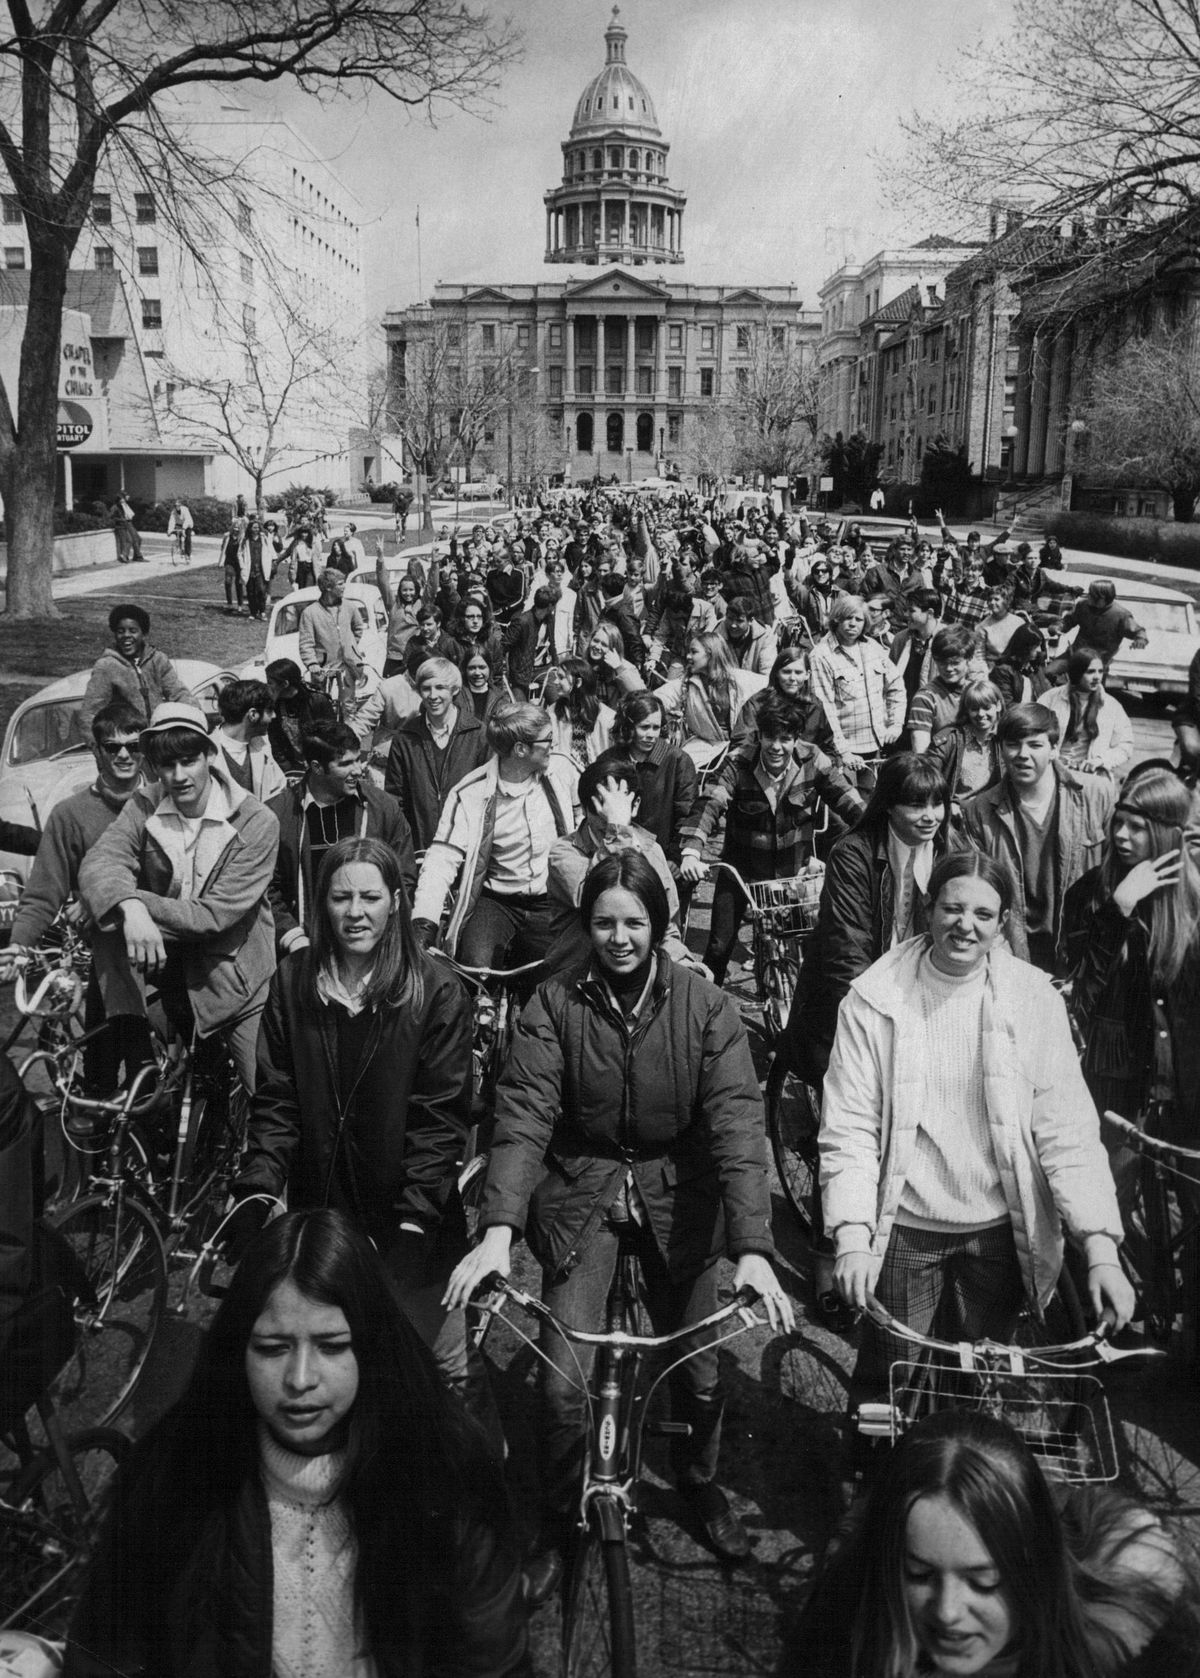 APR 22 1970, APR 22 1973, SEP 23 1974; Bicyclists Demonstrate Near State Capitol During 1970 Earth D